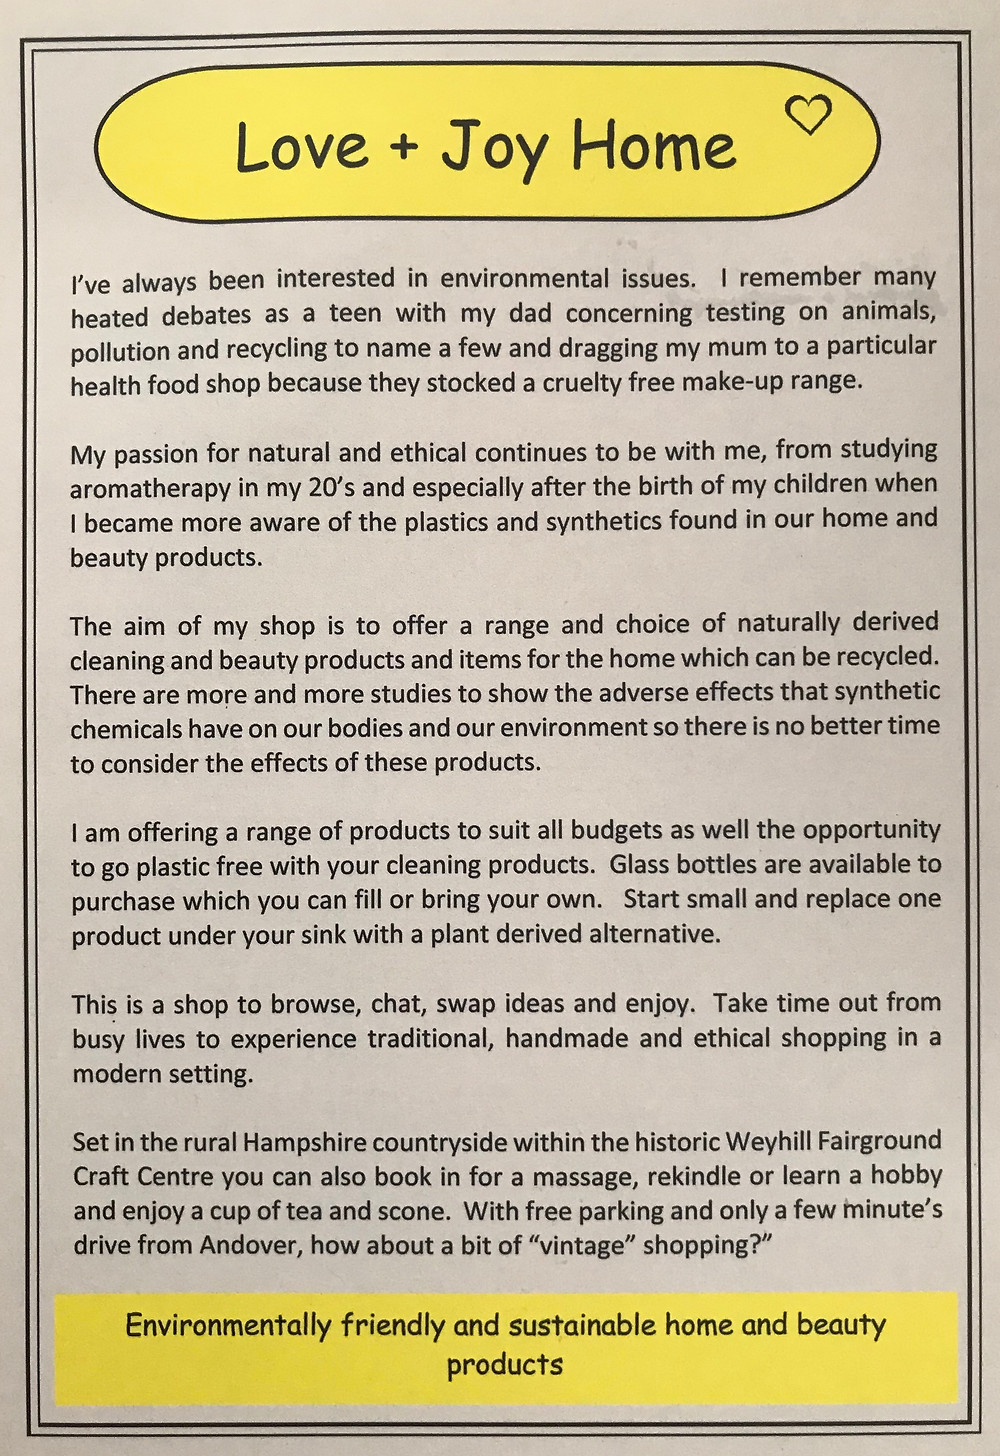 A little bit about Sarah and her shared passion for environmentally-friendly products